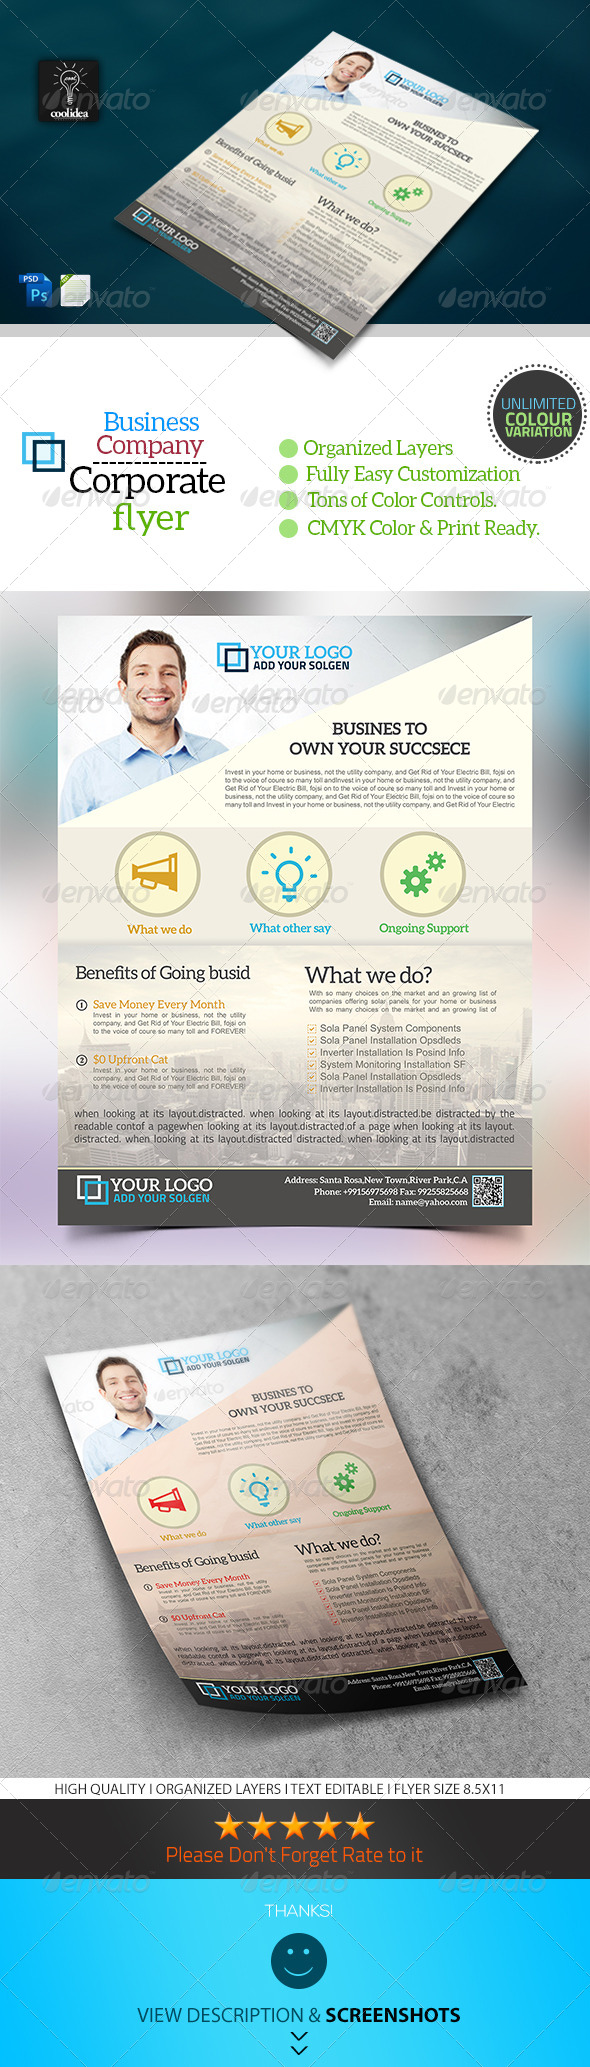 Corporate Flyer Template Business Vol01 - Corporate Flyers